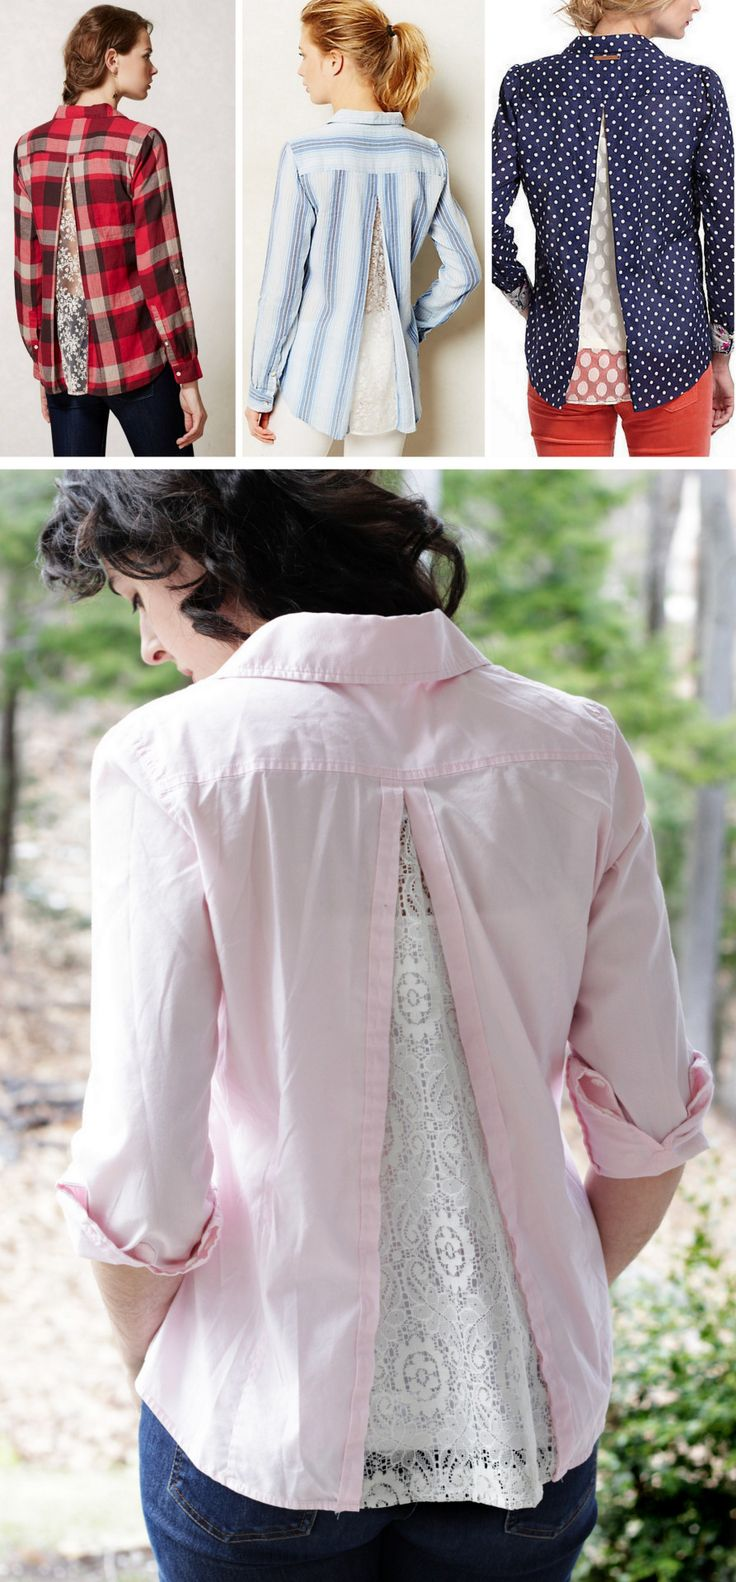 DIY Anthropologie Inspired Lace Back Shirt Tutorial fromMelmaria Designs.This is actually a very easy DIY. Melody of Melmaria Designs used a lace curtain she found at Goodwill that was not scratchy but still had a good drape to it.Top Photos: All sold out/NA Anthropologie Shirts - all are button down in the front. Bottom Photo: DIY by Melmaria Designs.For more knockoffs of all types go here.